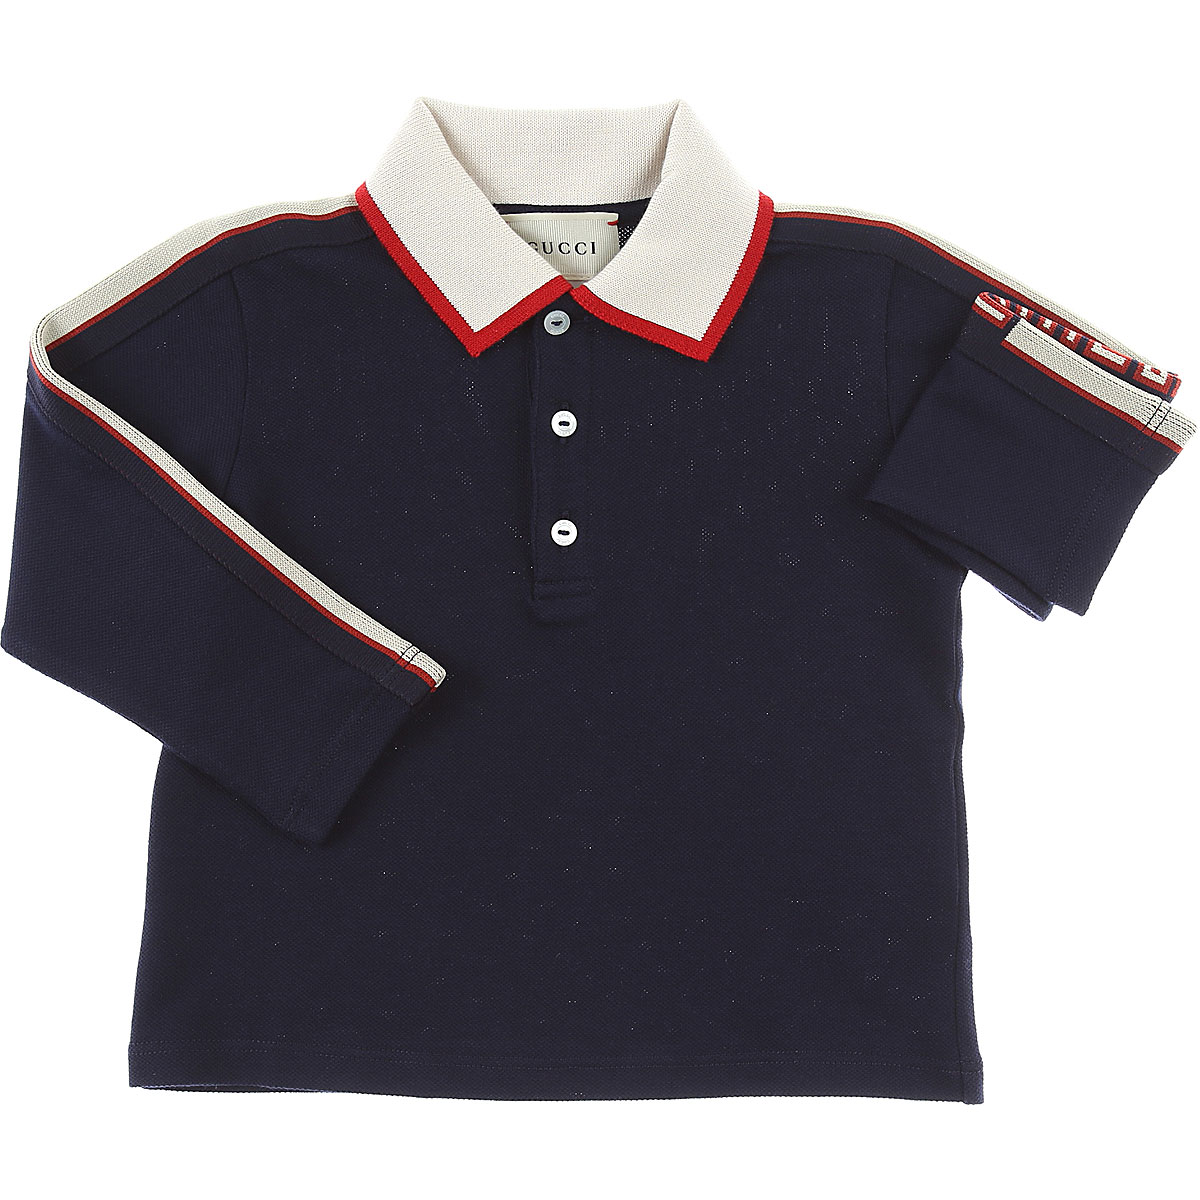 Image of Gucci Baby Polo Shirt for Boys, Blue, Cotton, 2017, 12M 18M 2Y 3Y 6M 9M